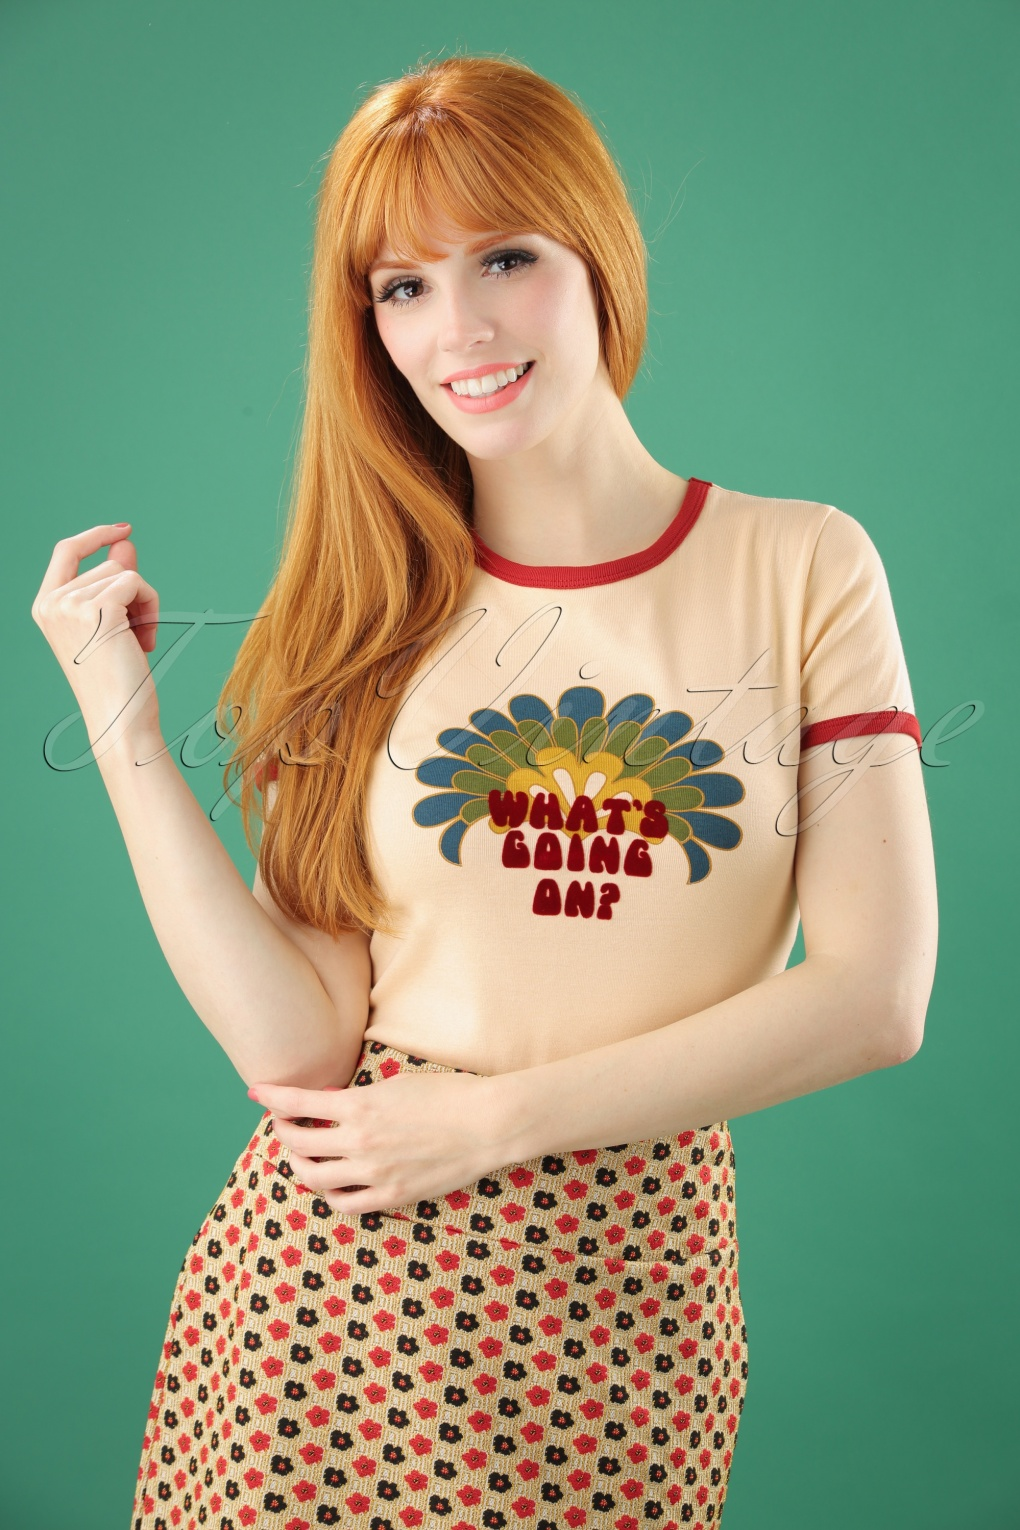 Women's 70s Shirts, Blouses, Hippie Tops 70s Whats Going On Tee in Sand £25.10 AT vintagedancer.com